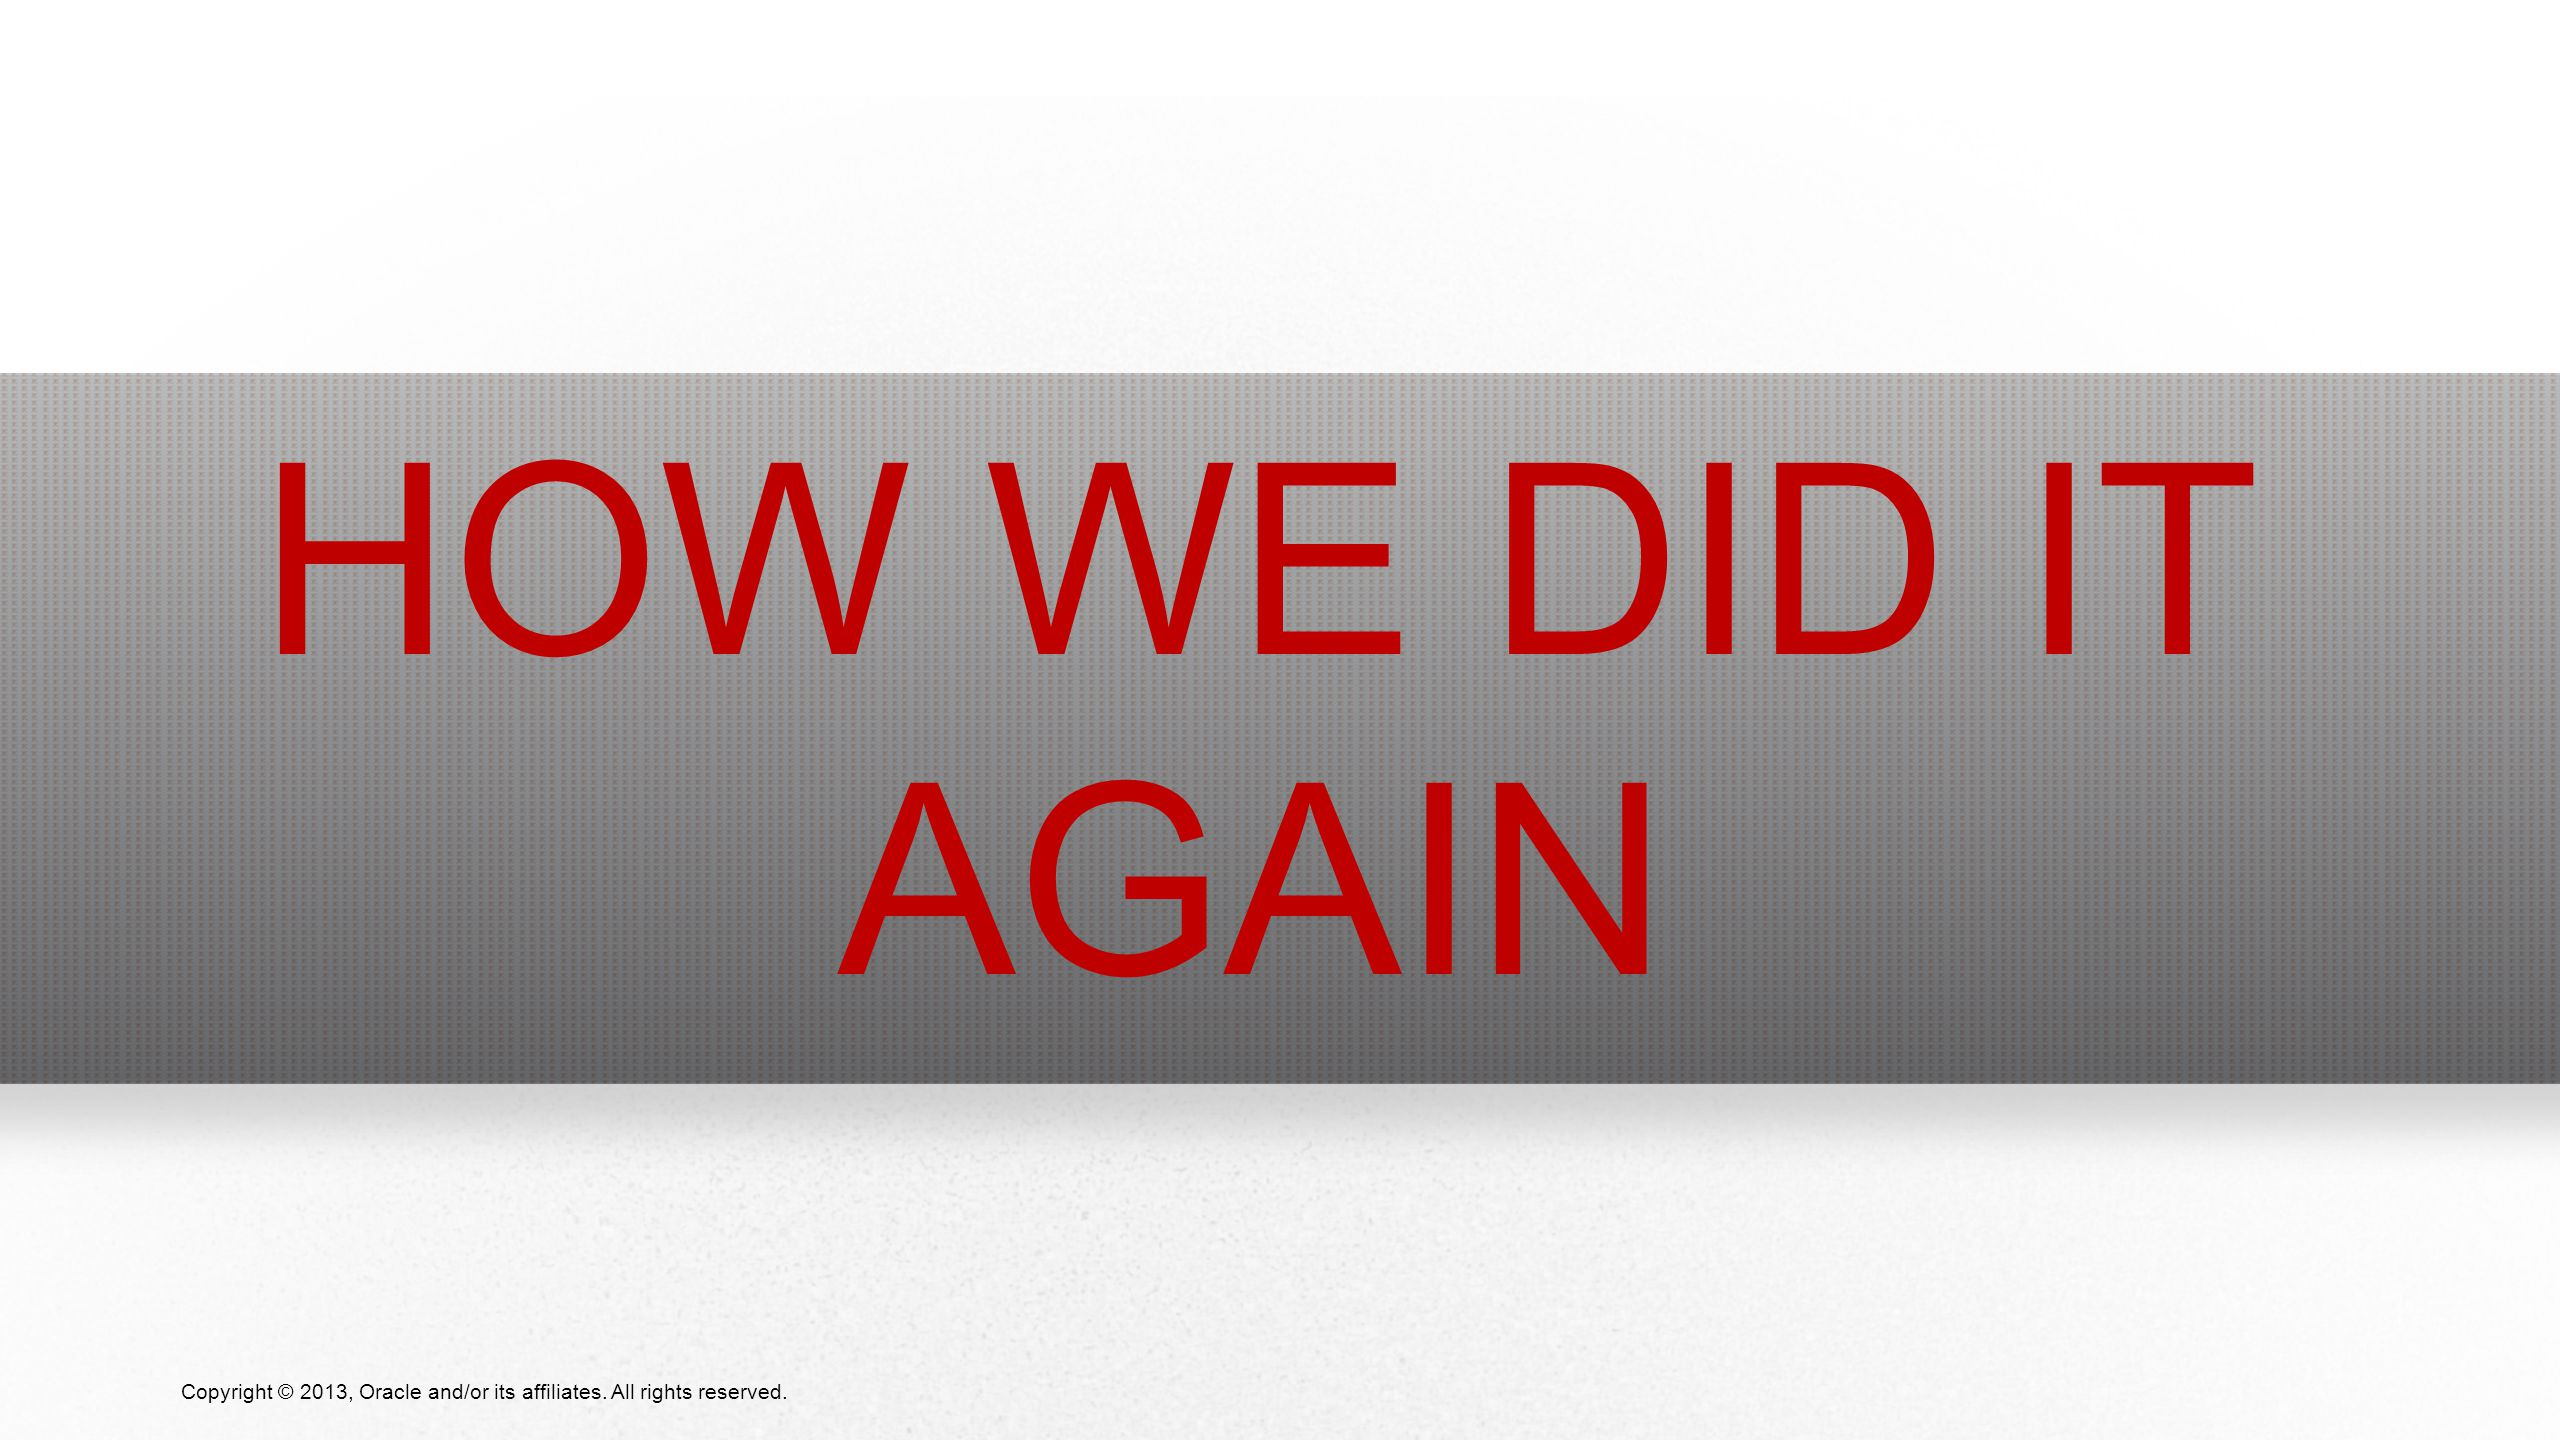 10 Copyright © 2013, Oracle and/or its affiliates. All rights reserved. HOW WE DID IT AGAIN